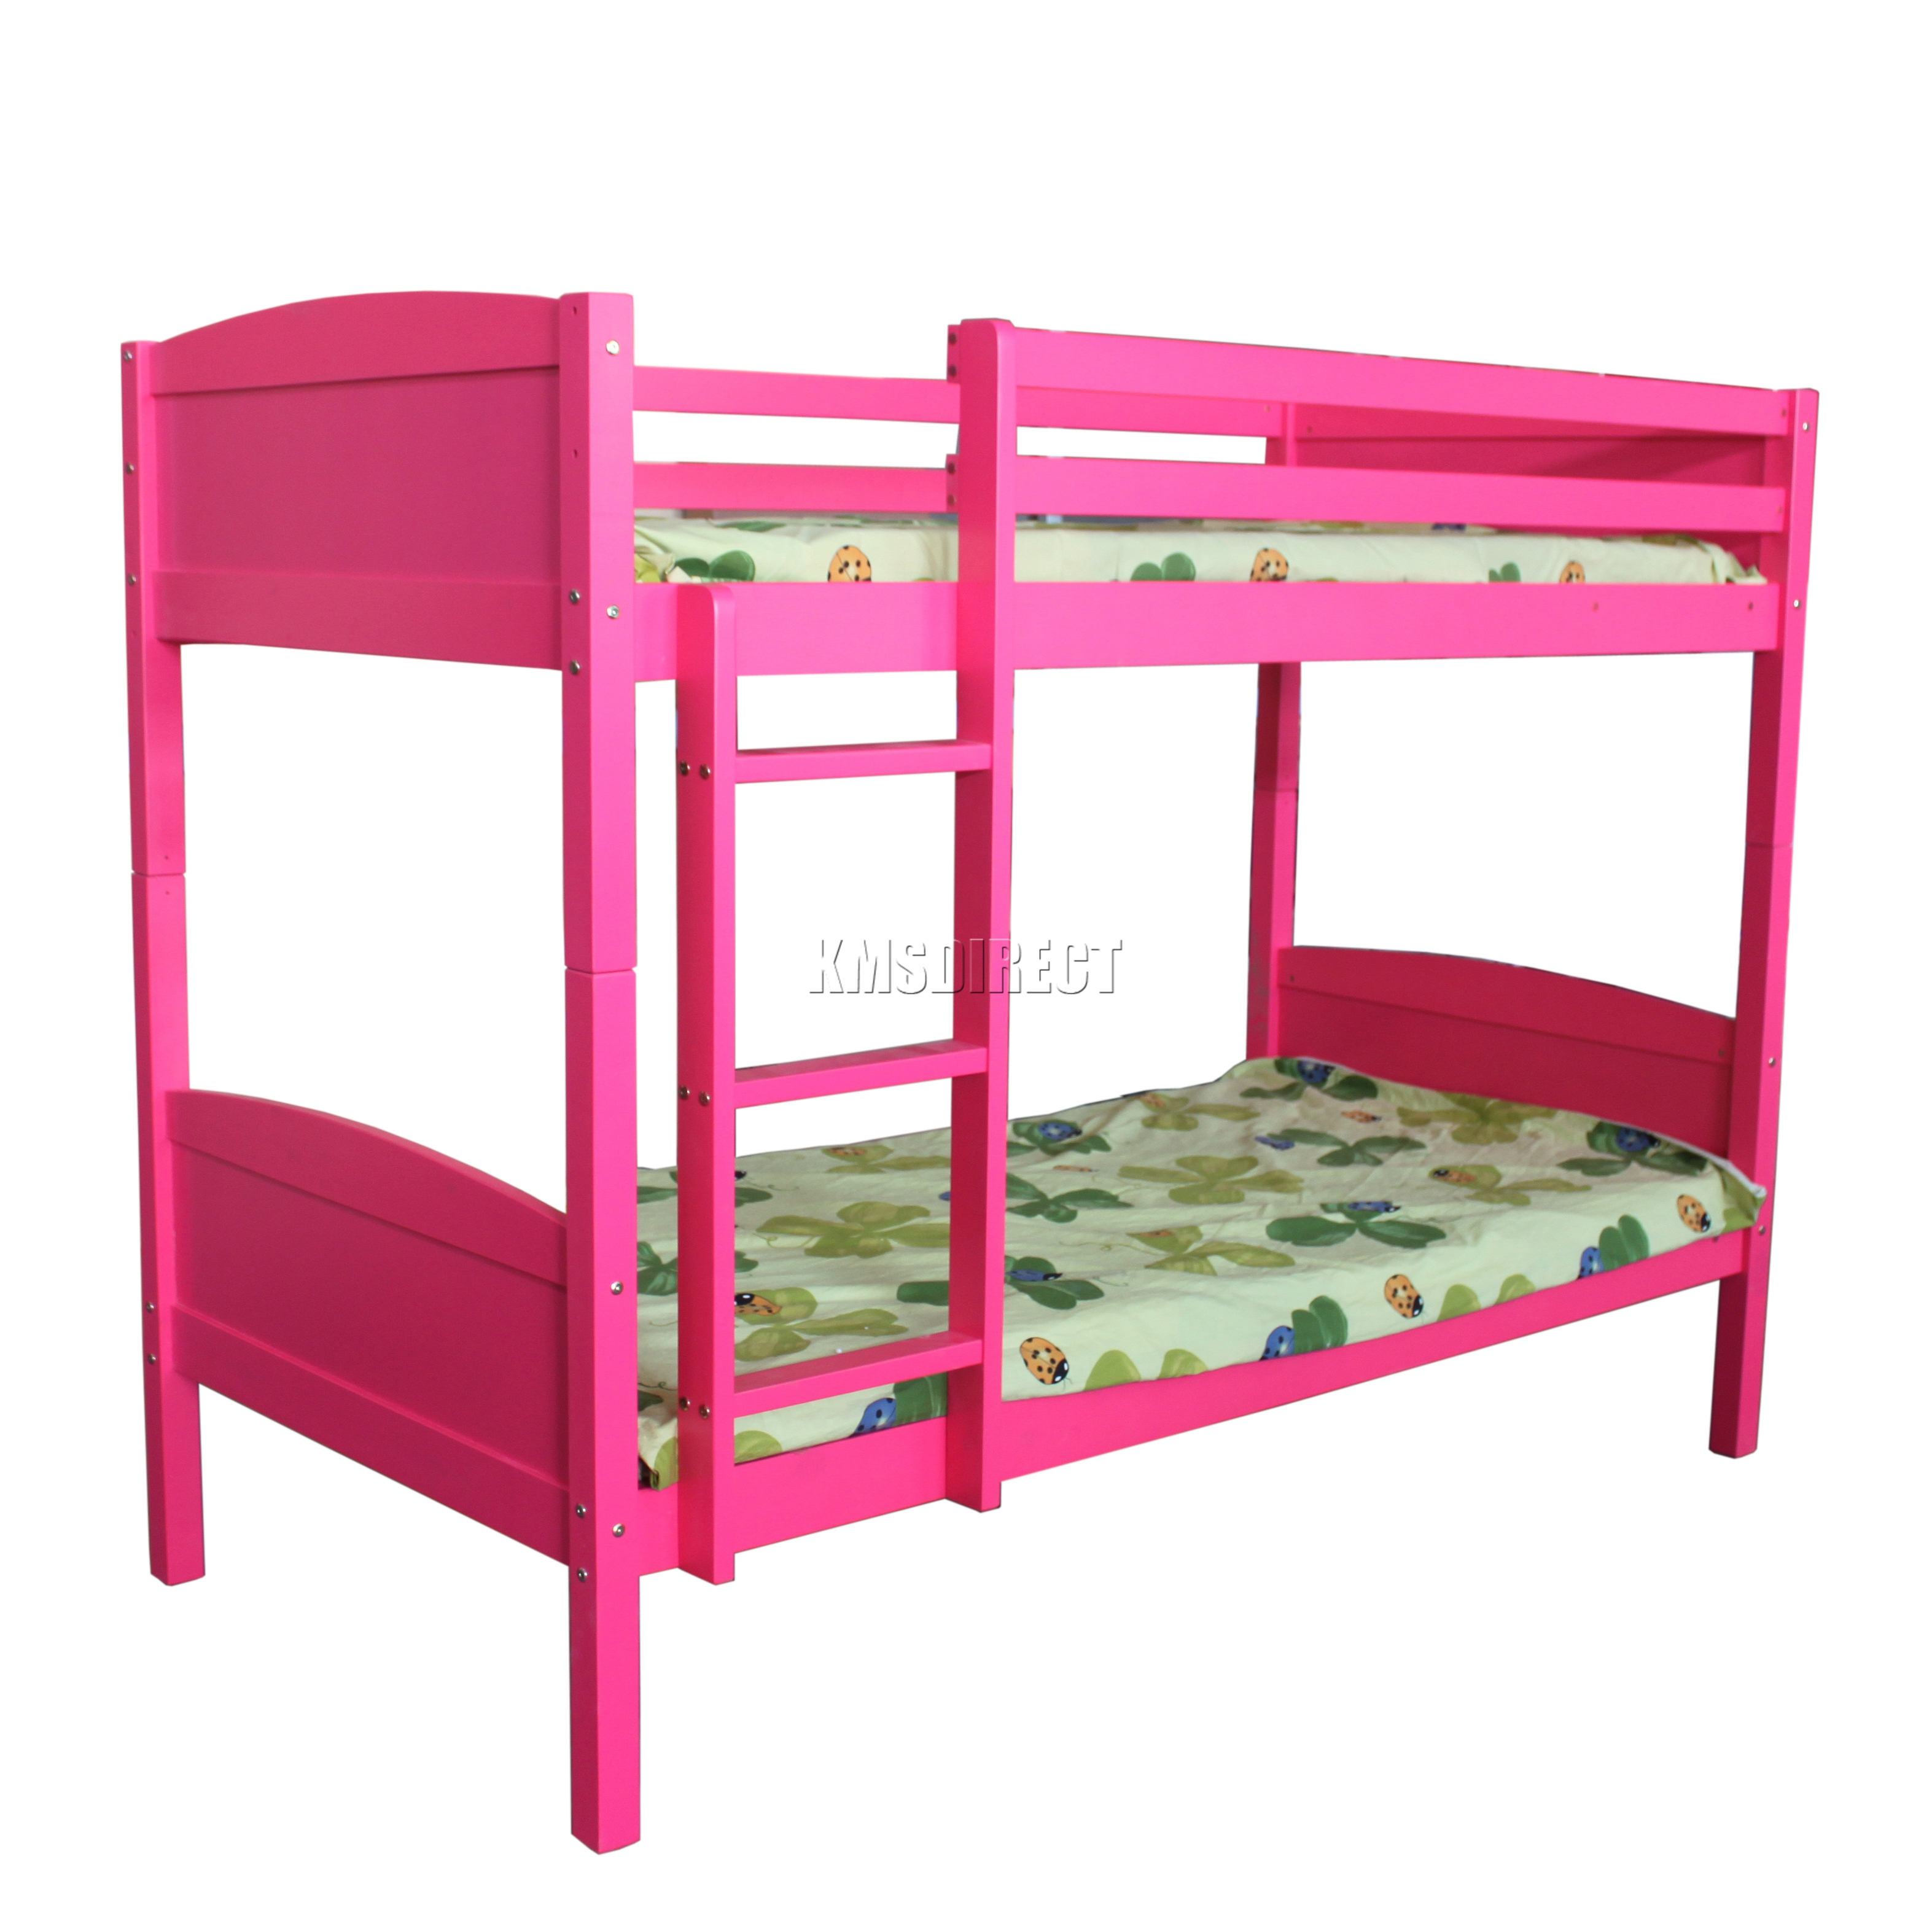 Westwood bunk bed 3ft wood wooden frame children sleeper for Bunk bed frame with mattress